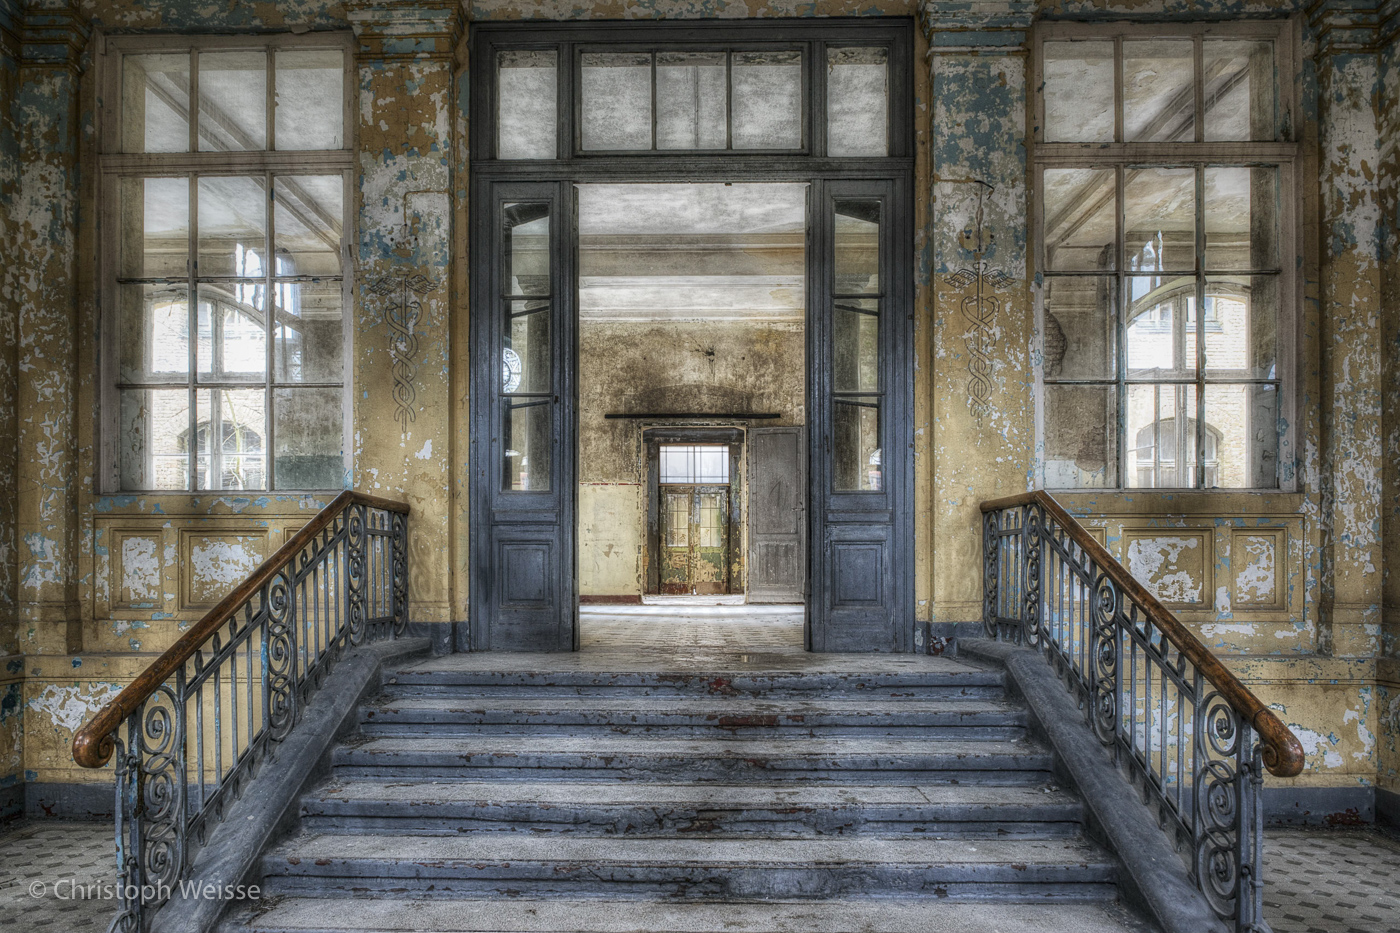 LostPlaces-www.christophweisse.com-5.jpg